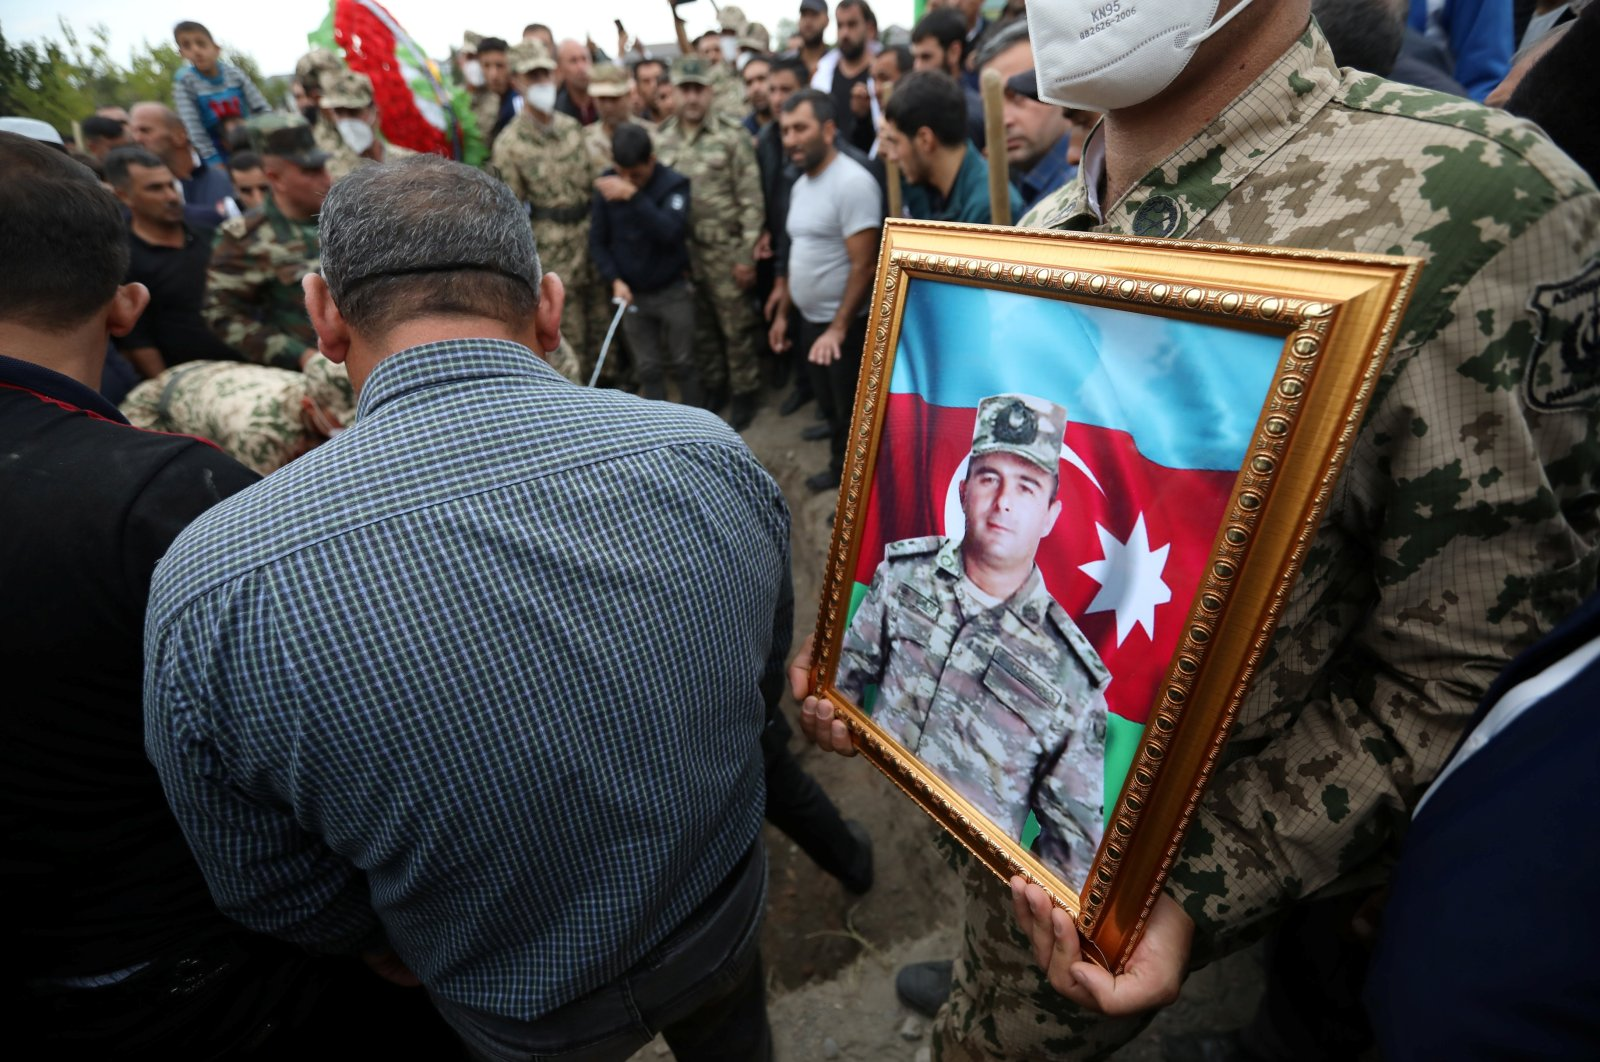 A servicemen holds a portrait of Colonel Lieutenant Makhman Ganbarov, who was killed during the fighting in Armenia-occupied Nagorno-Karabakh region, during a funeral in the city of Barda, Azerbaijan Oct. 1, 2020. (Reuters Photo)